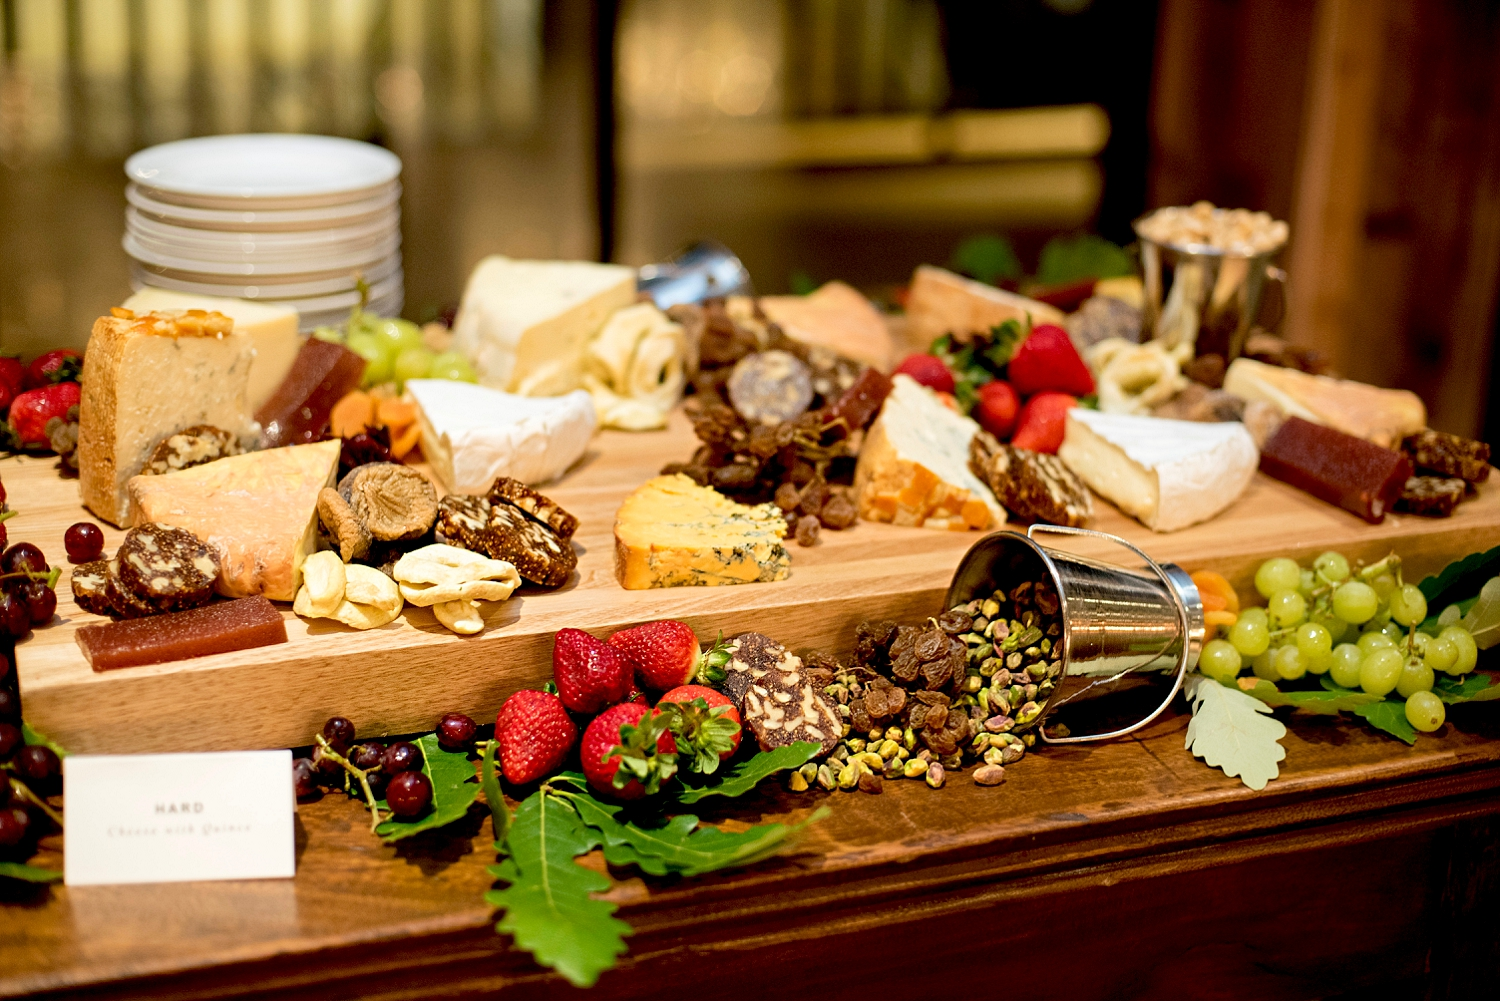 79_sandalford winery wedding perth cheese grazing board.jpg